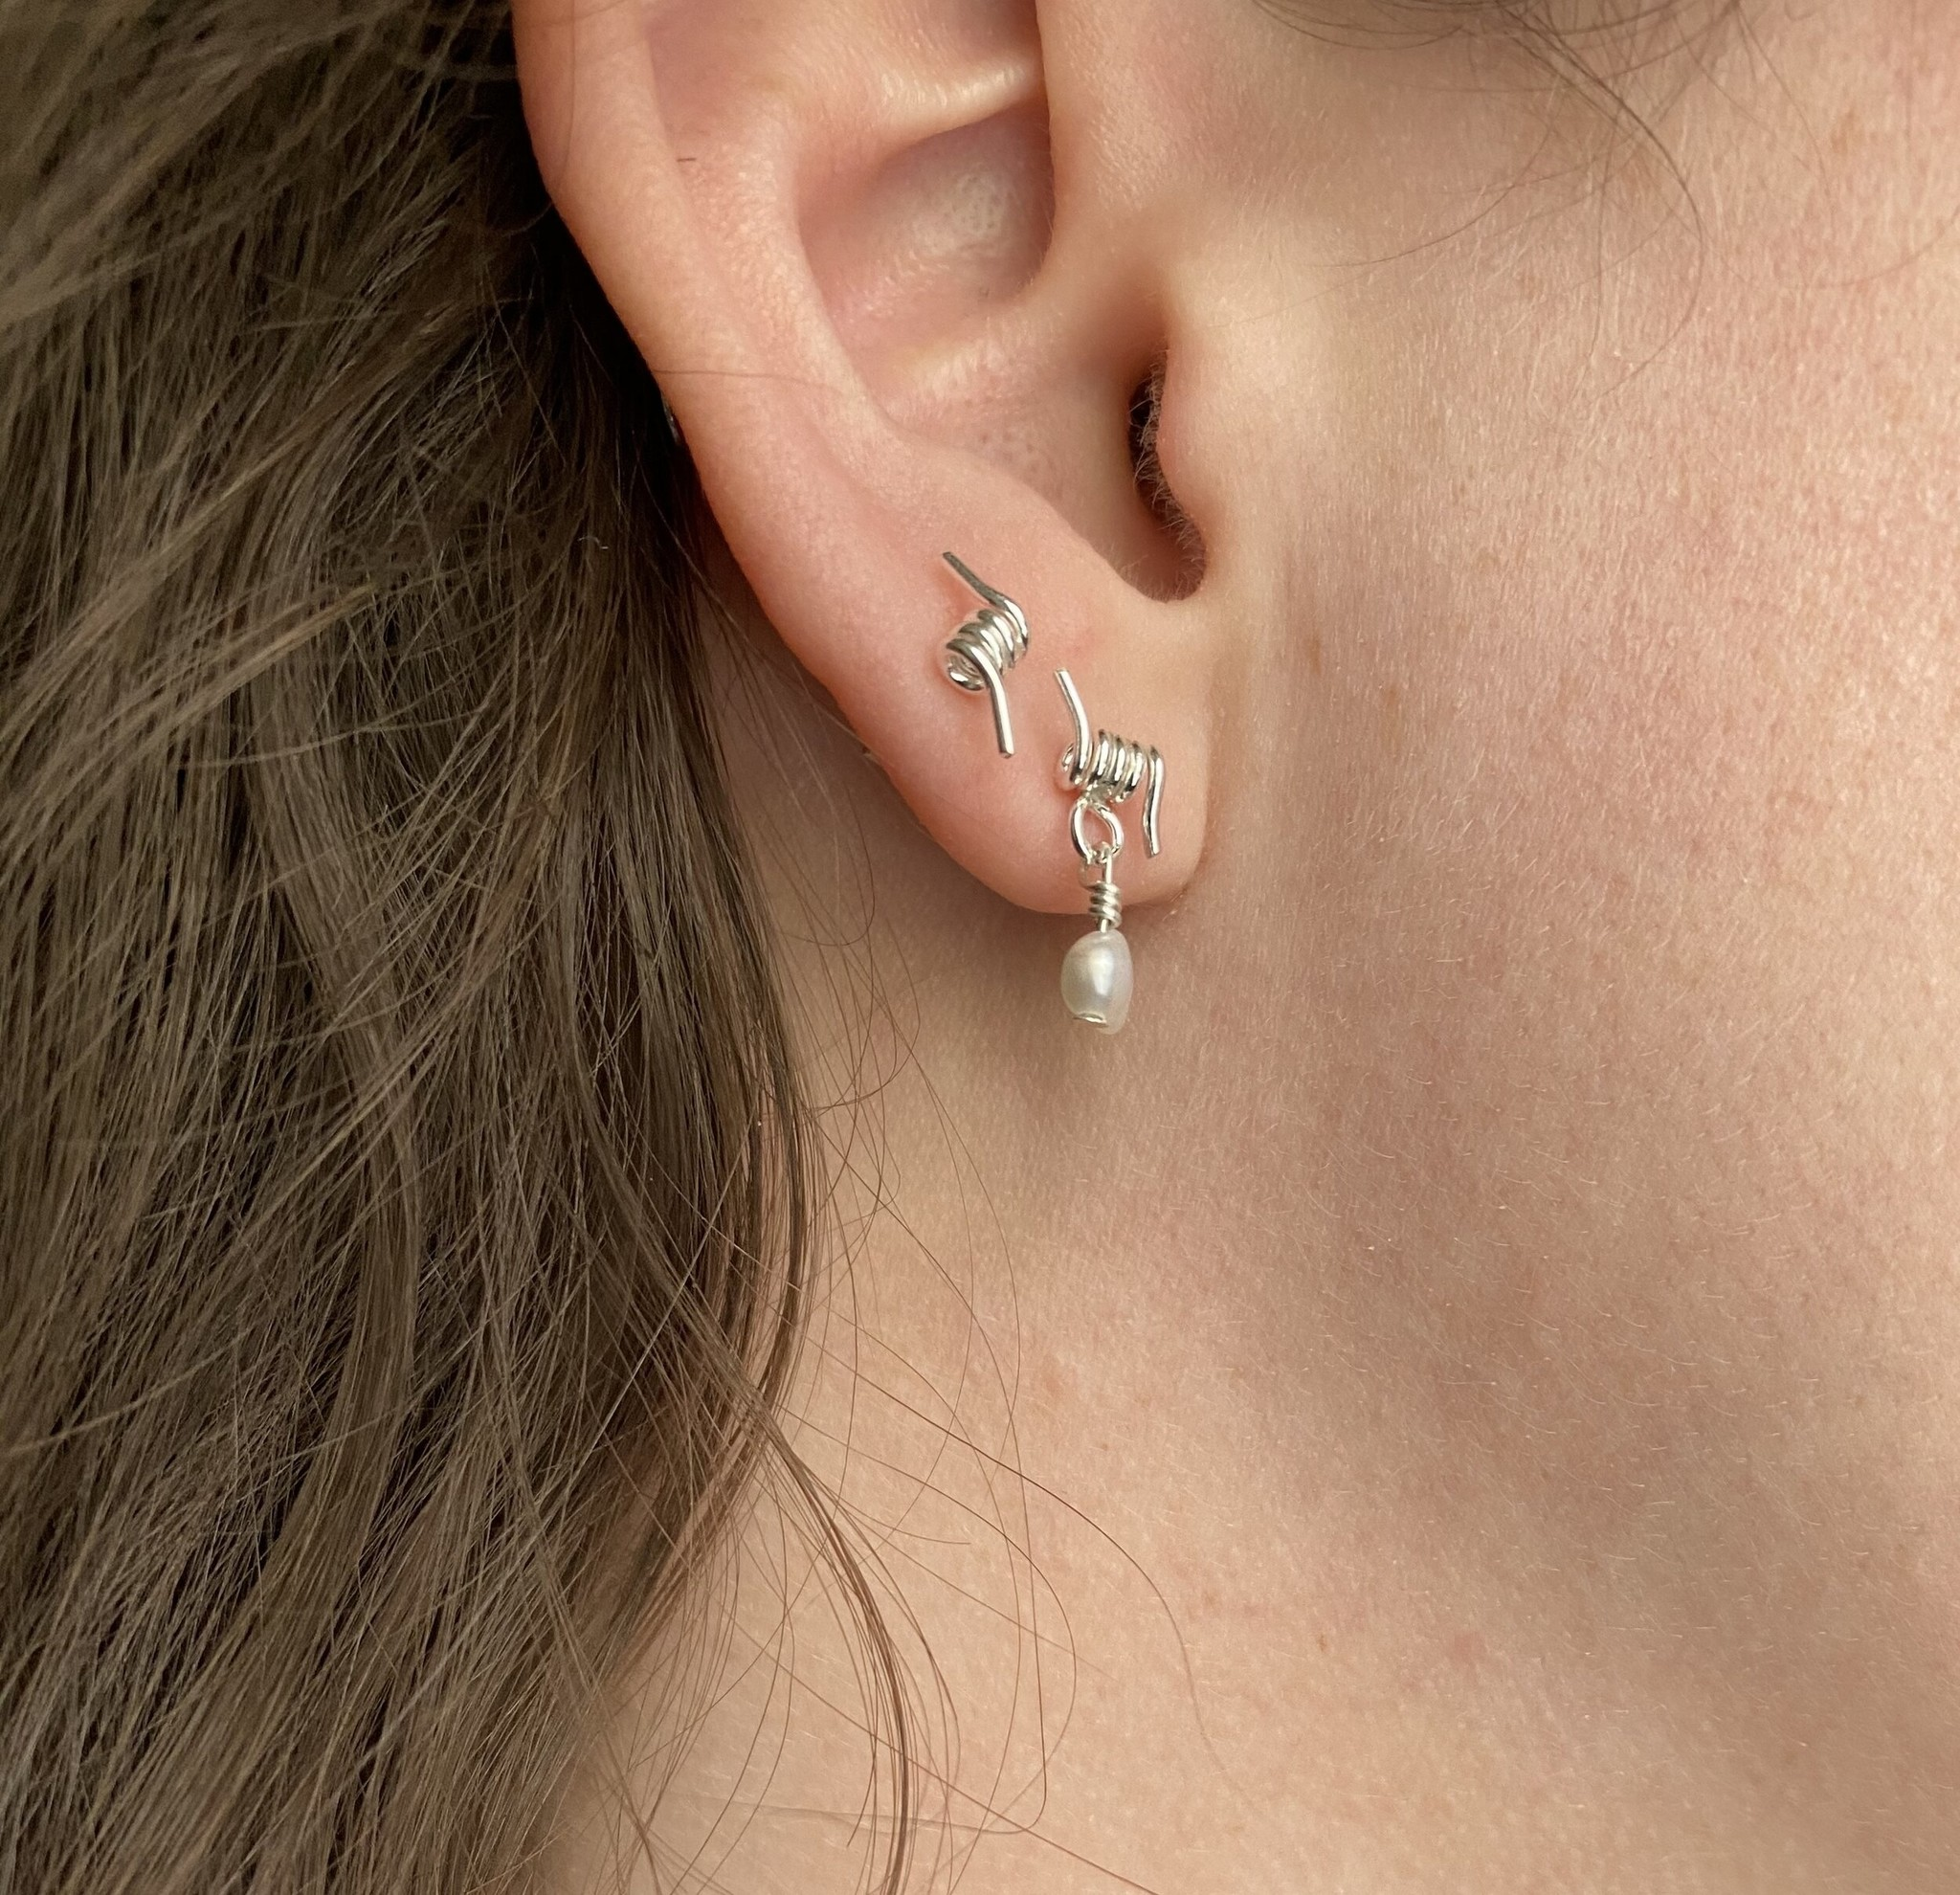 Chertova Barbed Studs with 14K Gold Fill